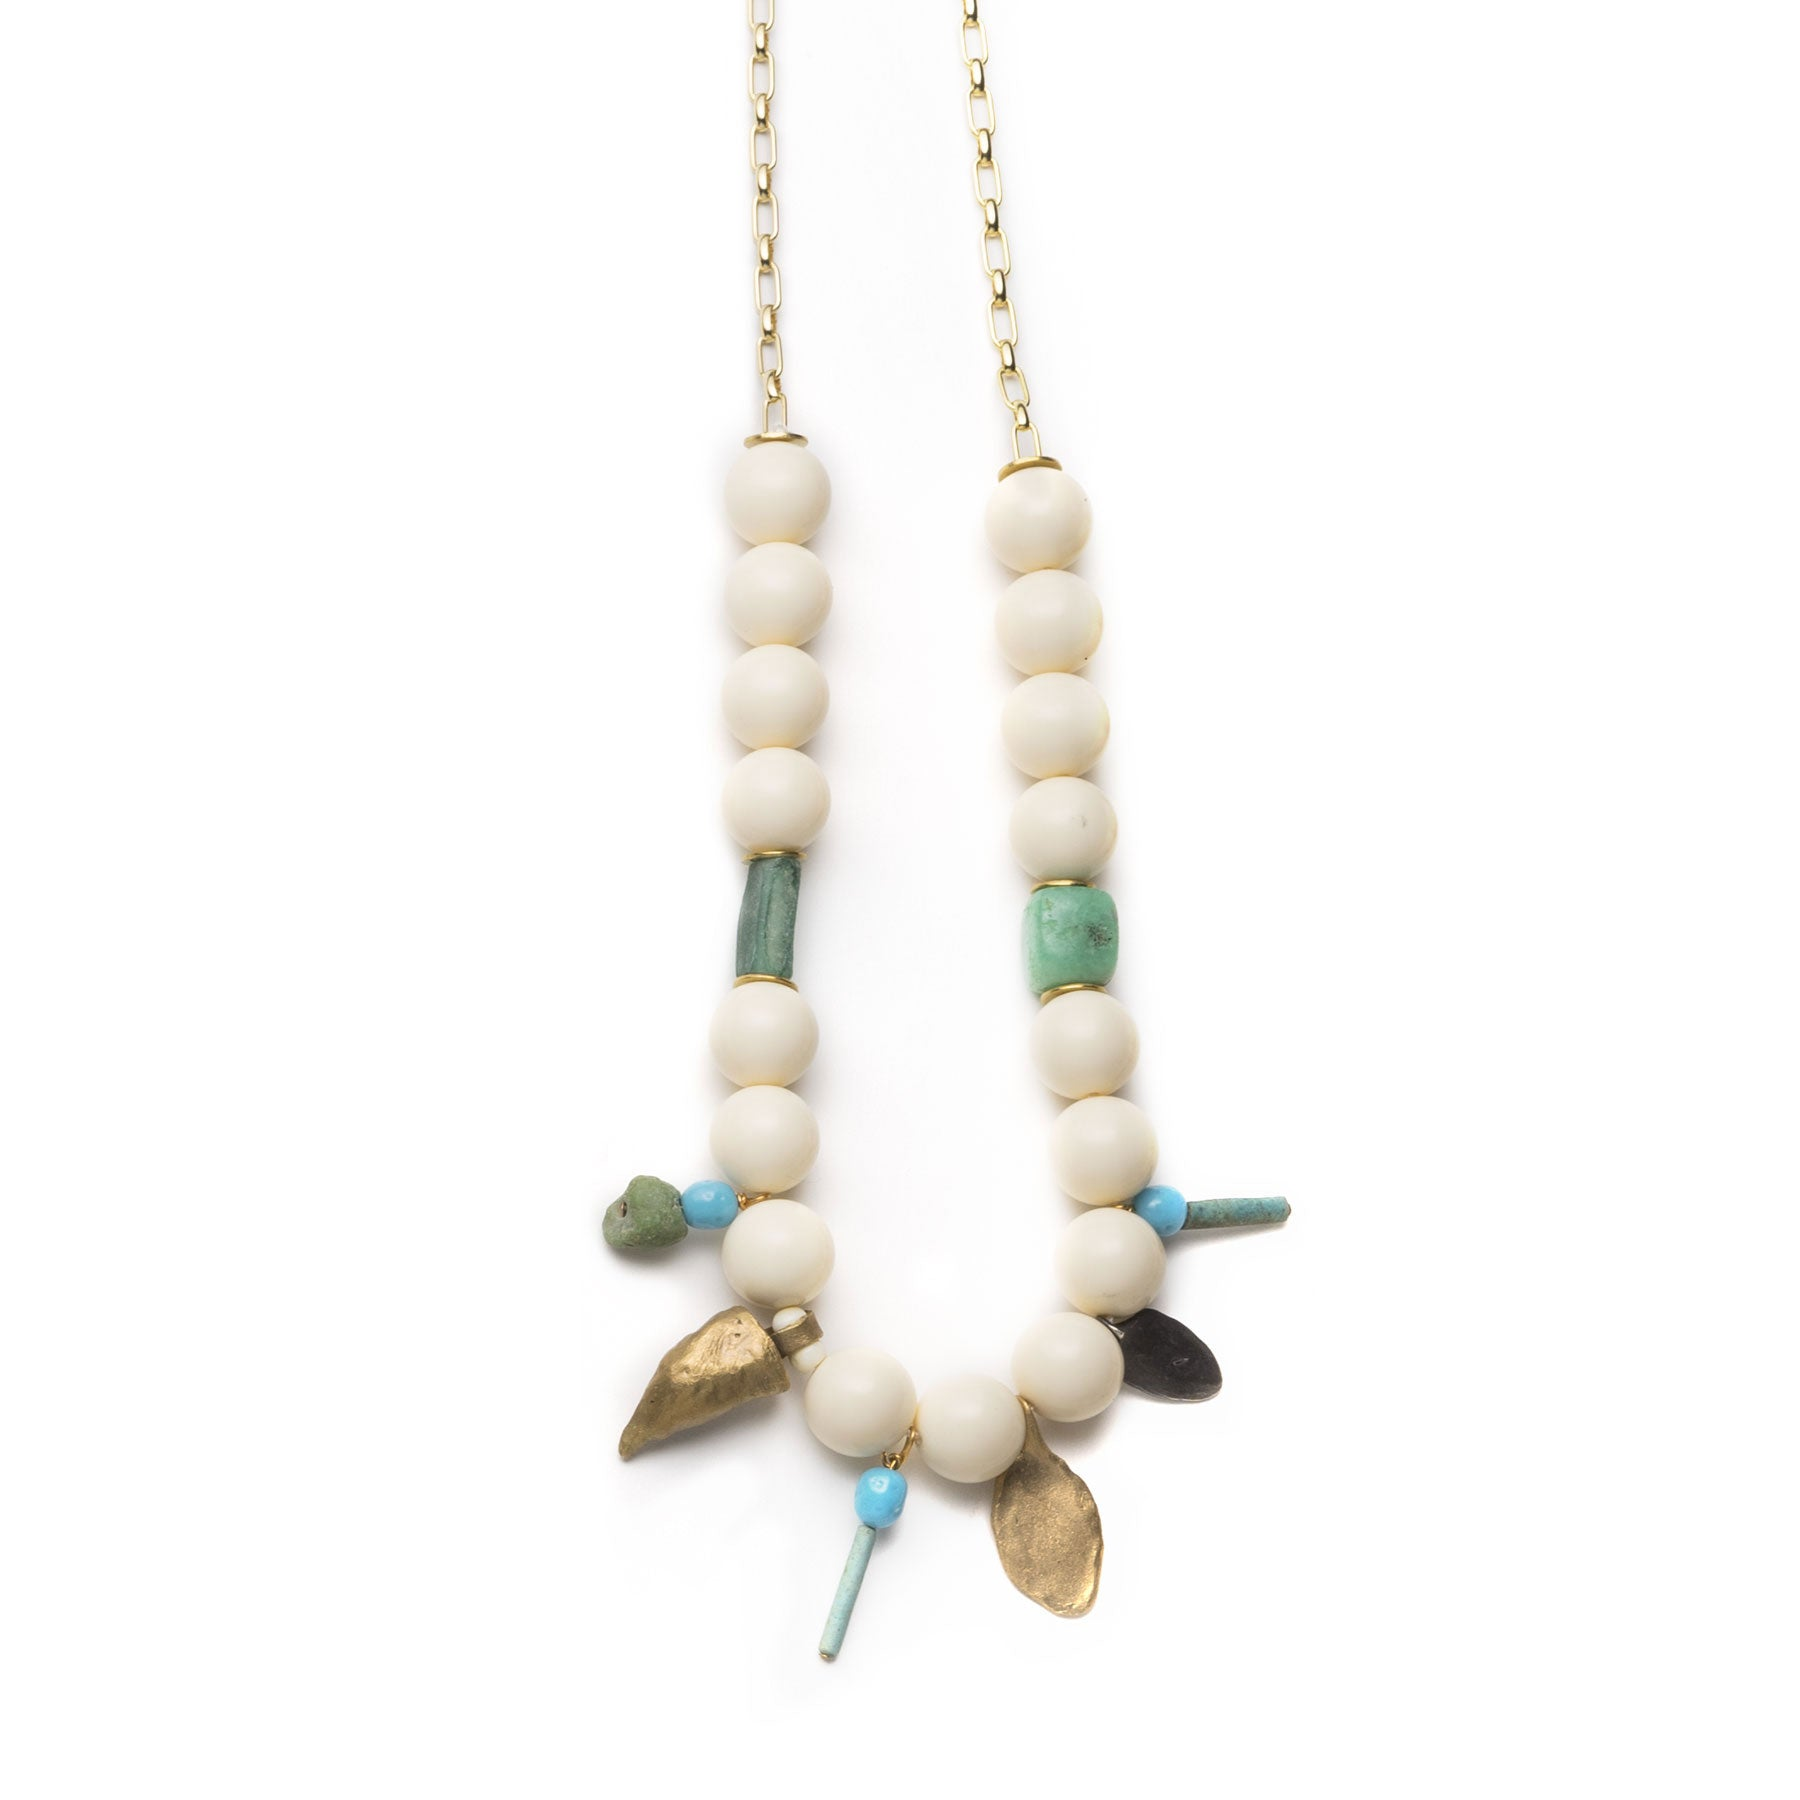 Large Claw and Vintage Lucite Necklace